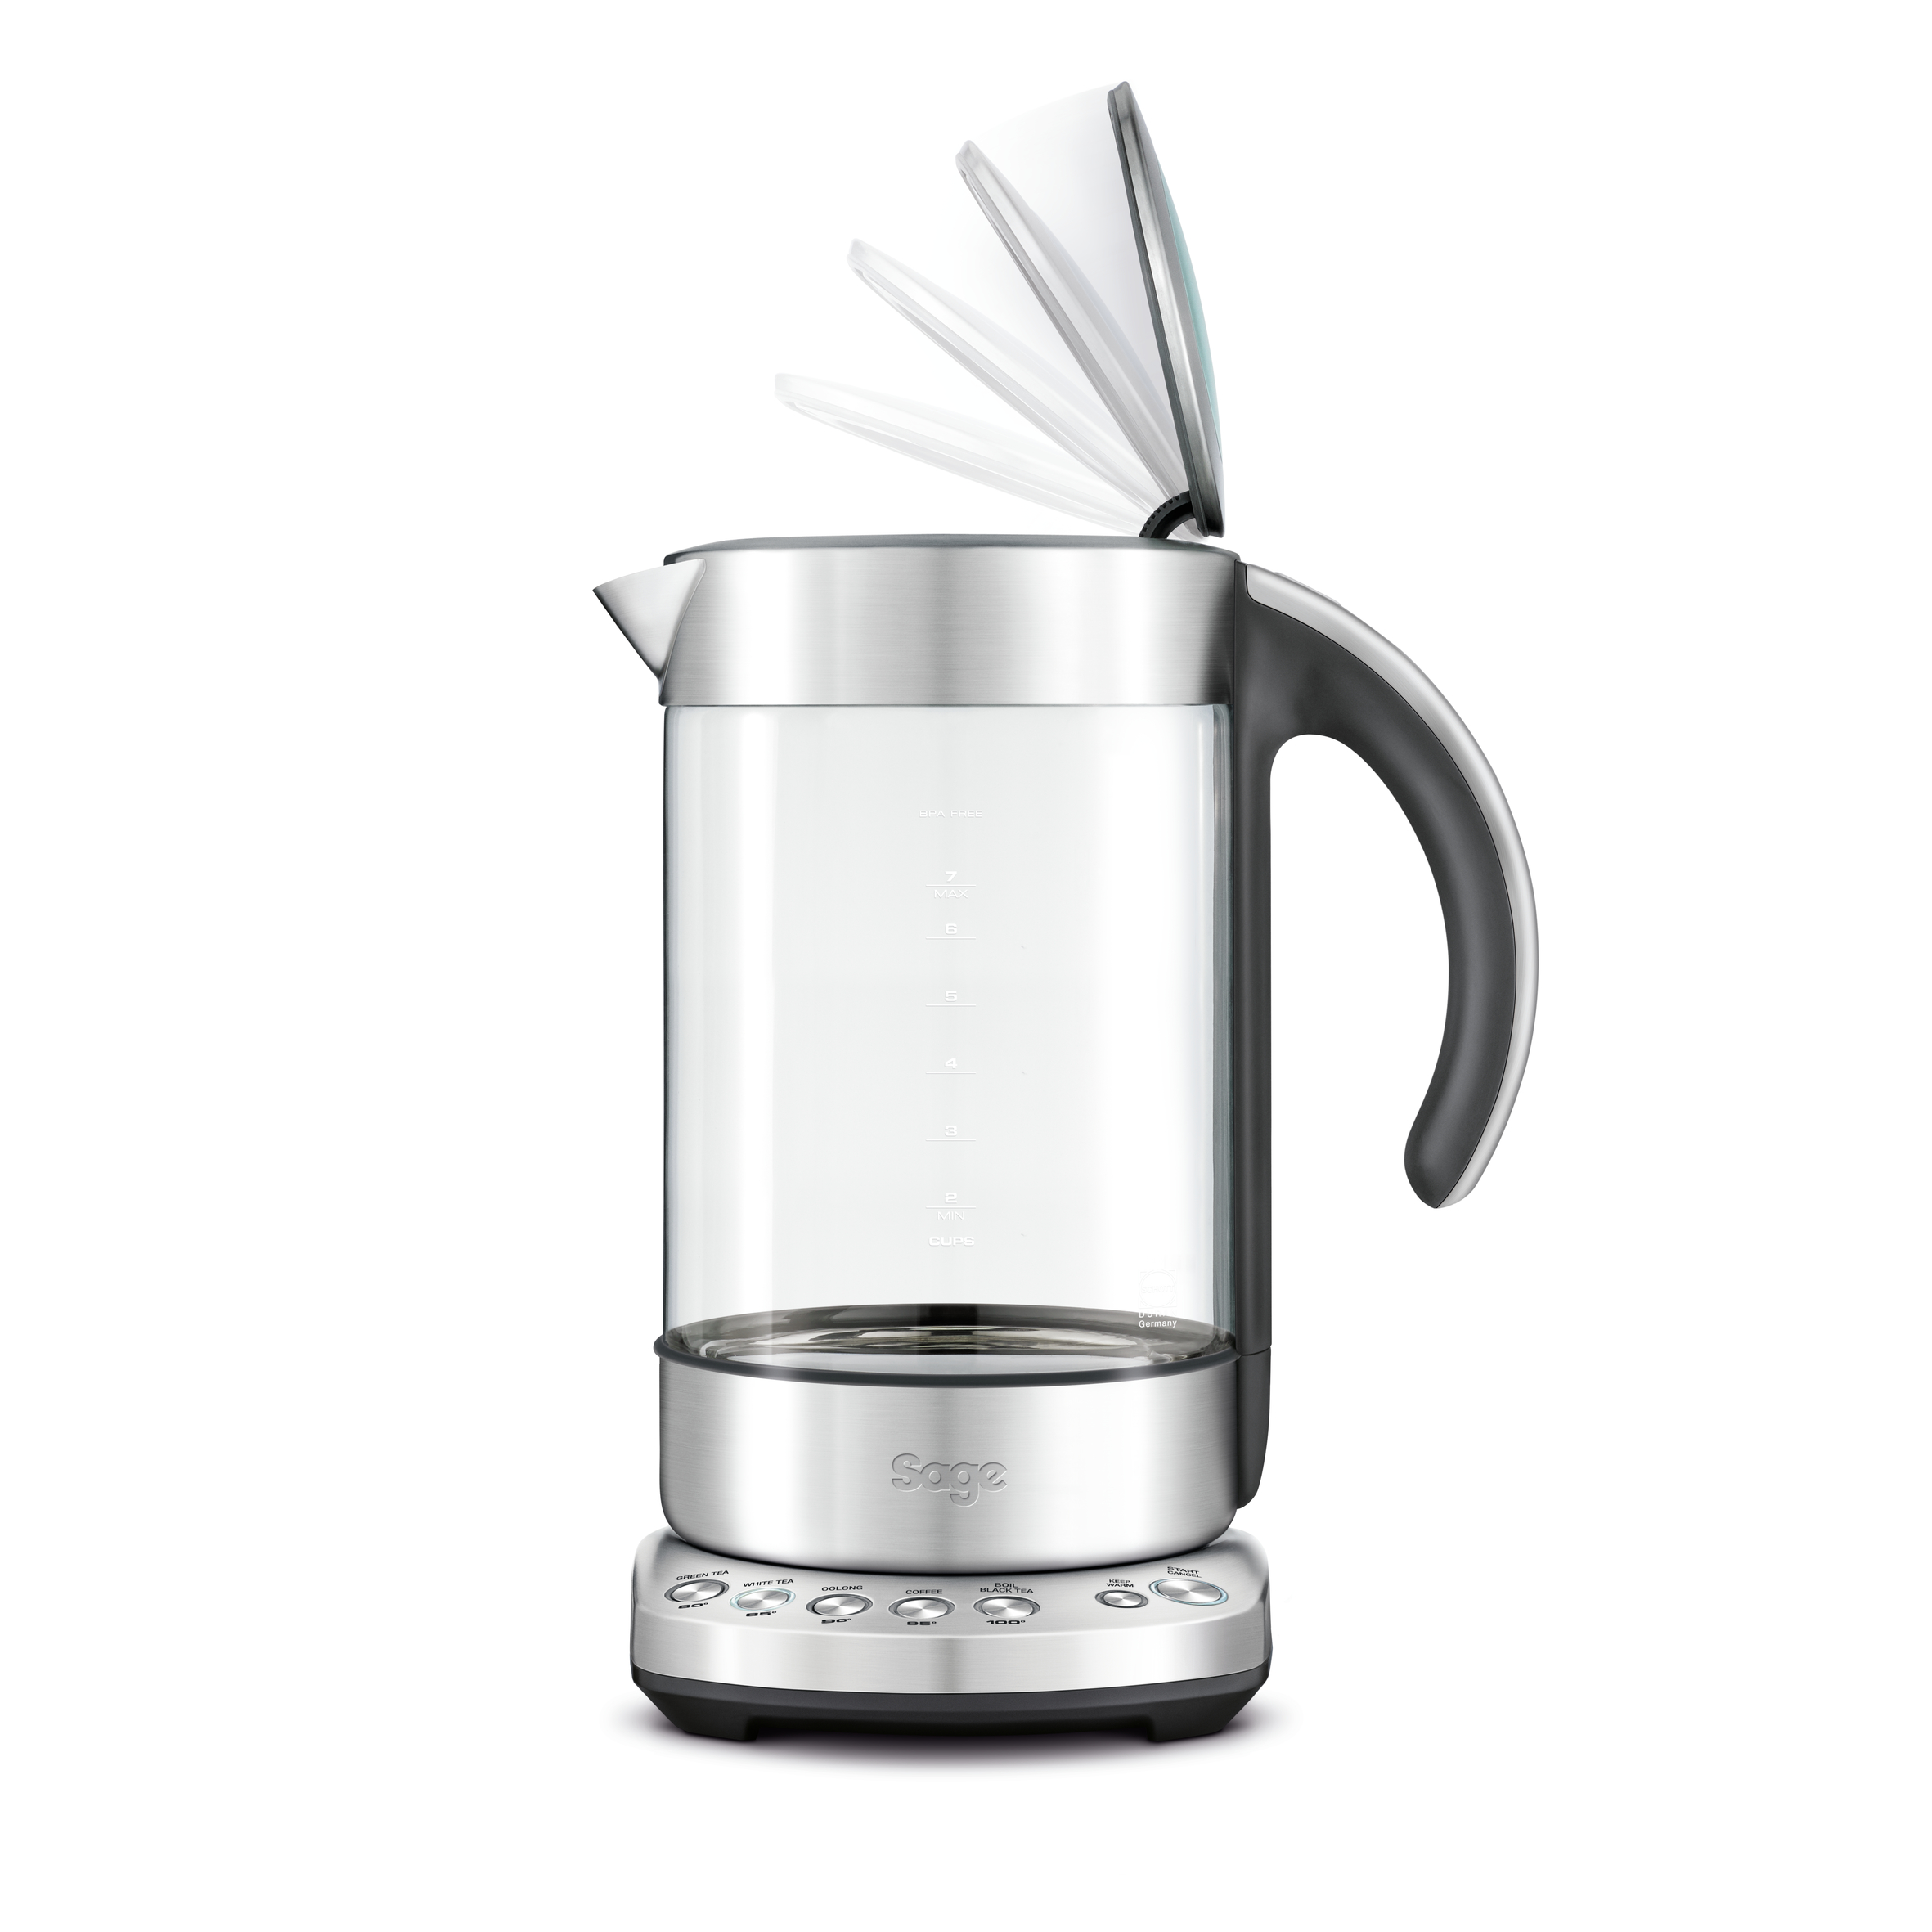 the Smart Kettle Clear in Brushed Stainless Steel with soft open lid